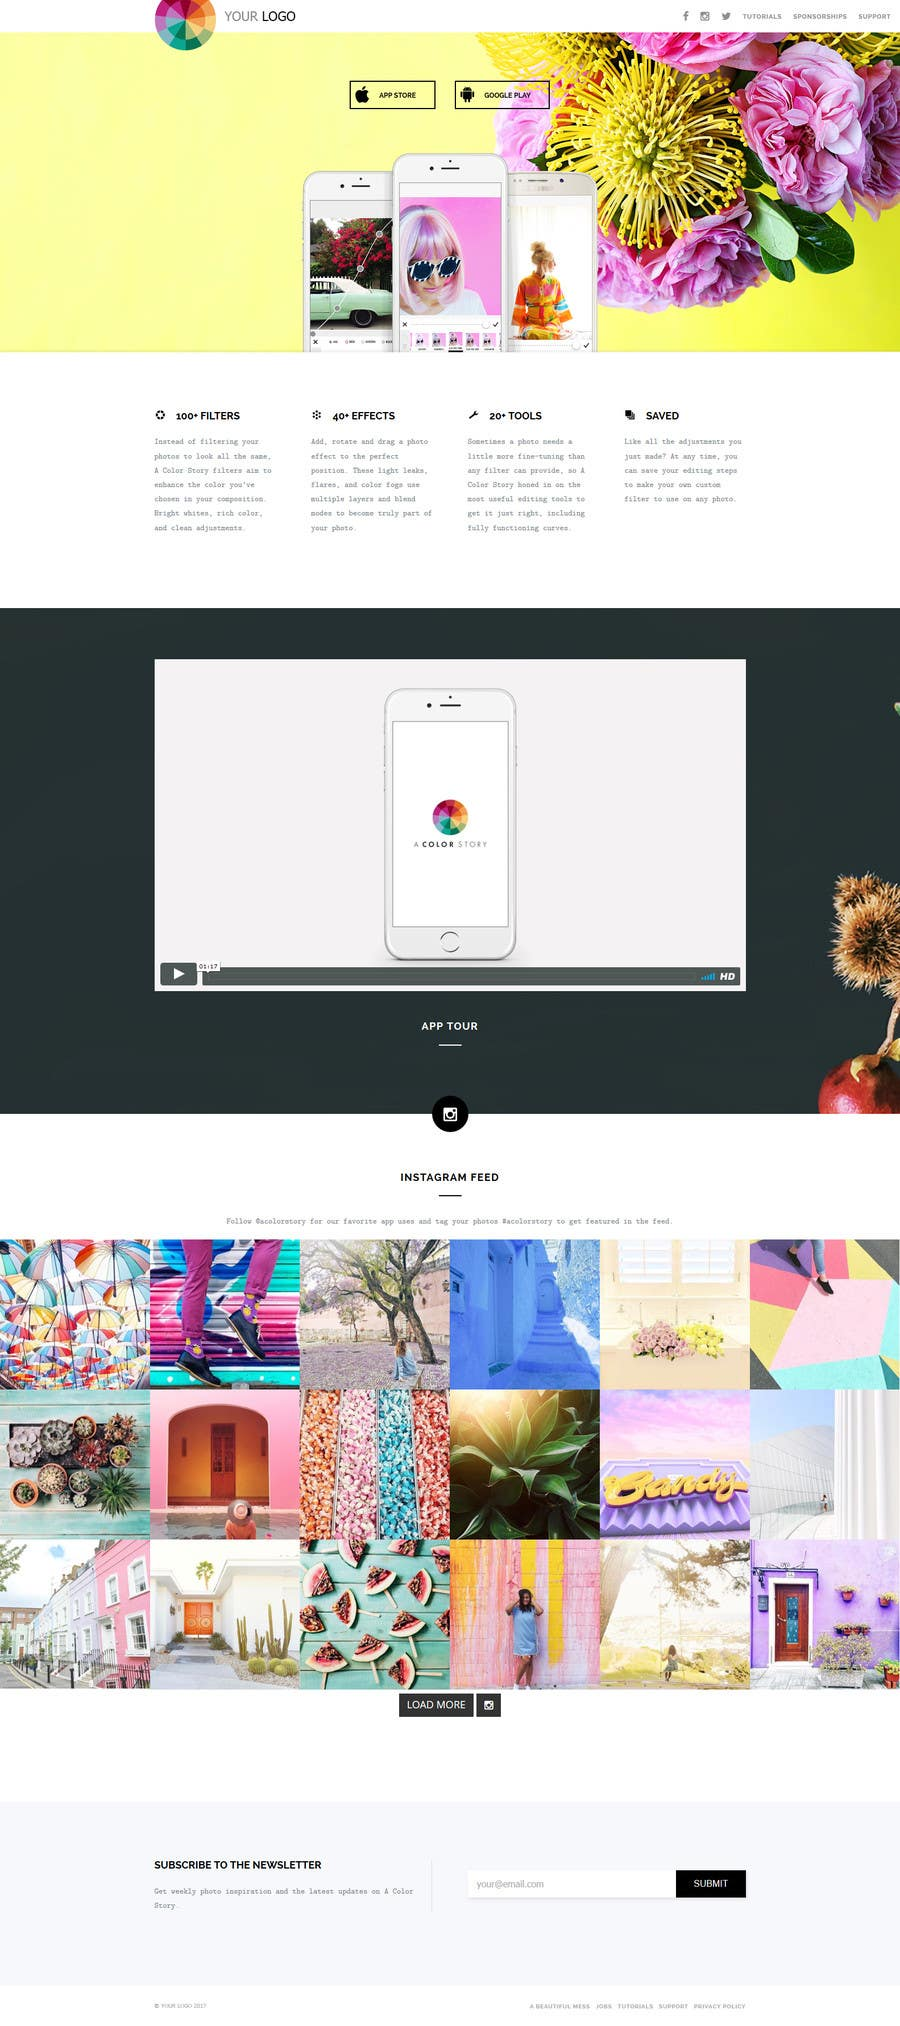 Proposition n°2 du concours 1 page - landing page in html / CSS for a mobile app w/ Instagram feed